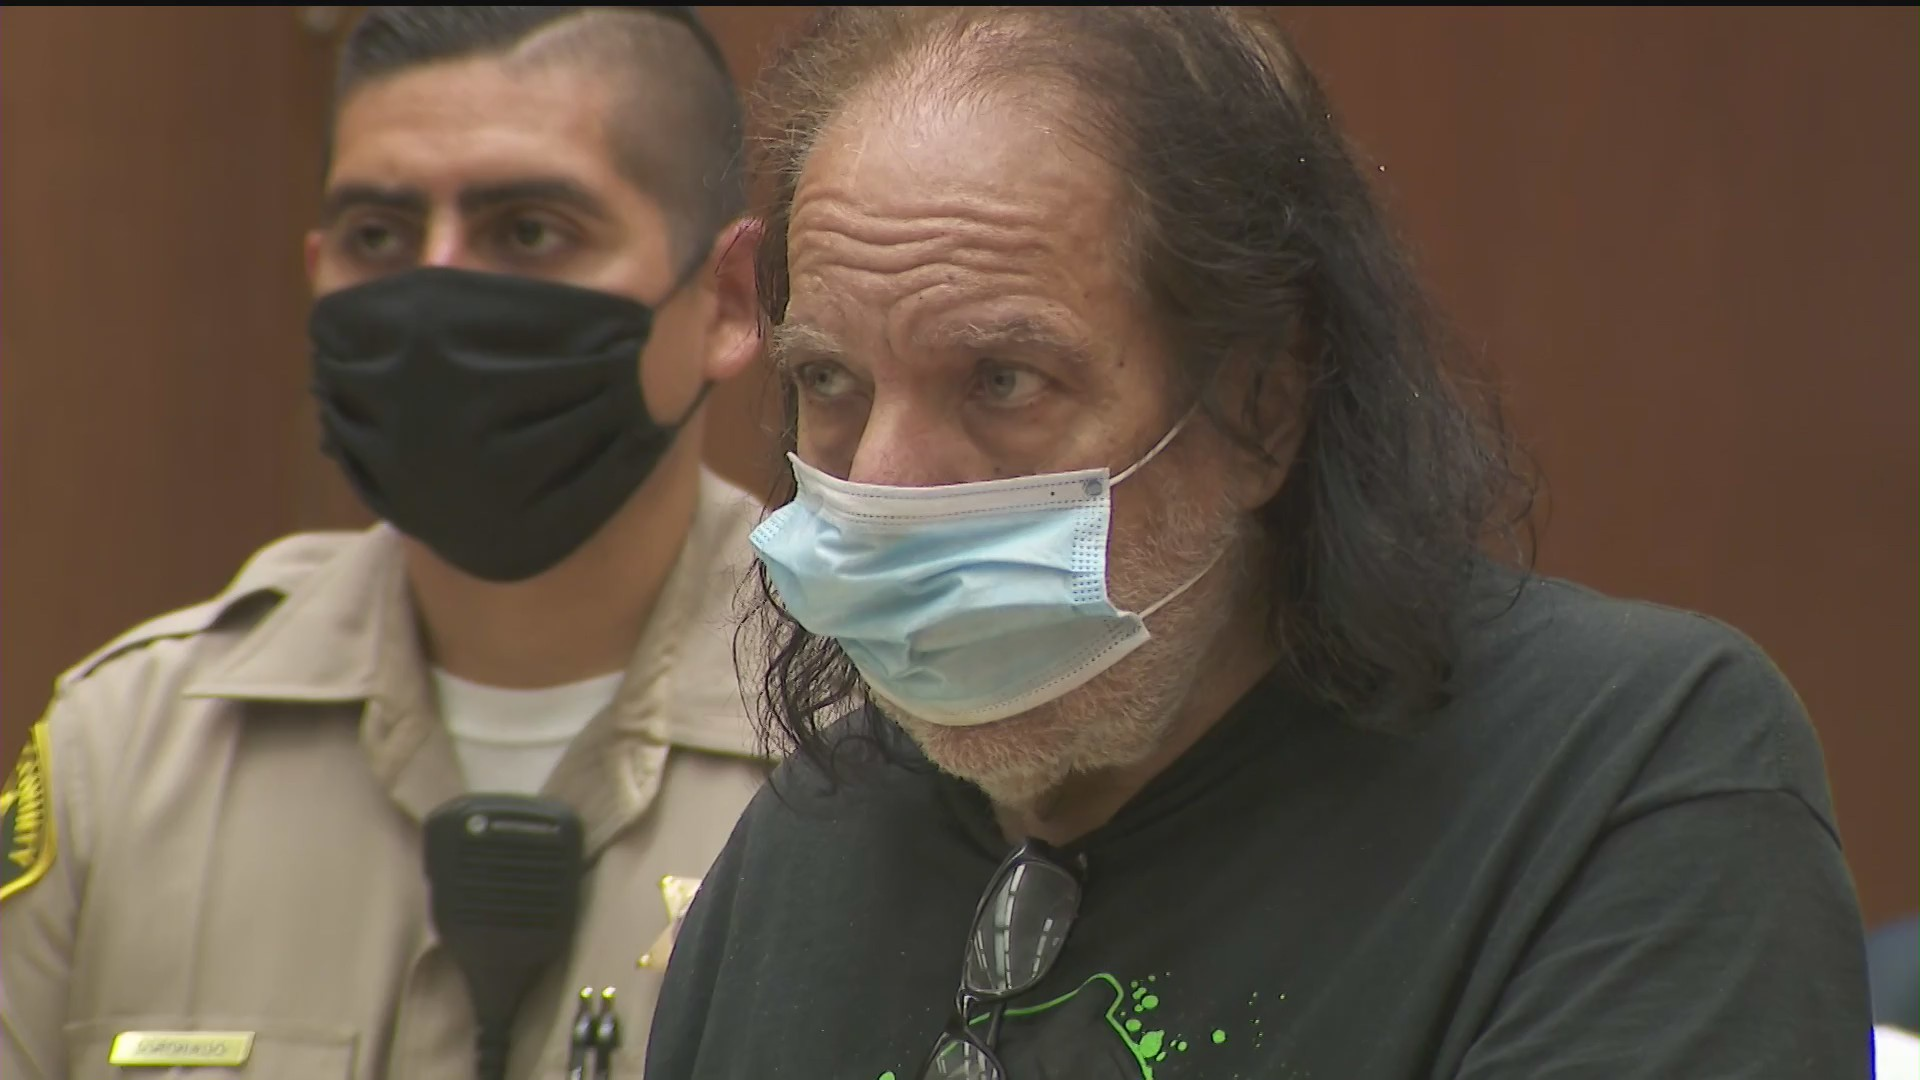 Ron Jeremy is seen at a court appearance in Los Angeles on June 23, 2020. (KTLA)